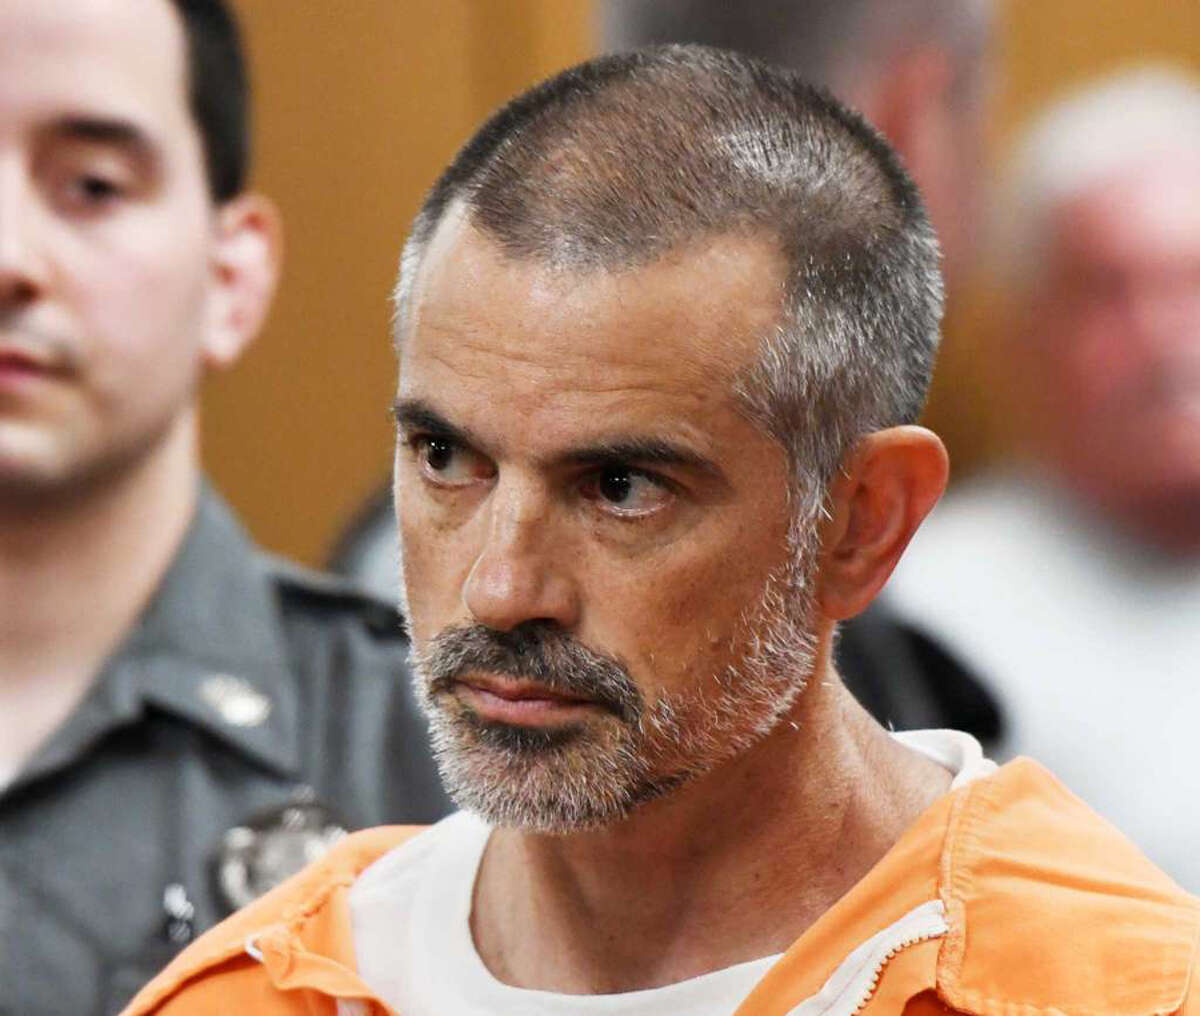 Fotis Dulos, 51, is arraigned on charges of tampering with or fabricating physical evidence and first-degree hindering prosecution at Norwalk Superior Court in Norwalk, Conn. Monday, June 3, 2019. Fotis Dulos, 51, and his girlfriend, Michelle C. Troconis, 44, were arrested at an Avon hotel late Saturday night and held on a $500,000 bond for charges of tampering with or fabricating physical evidence and first-degree hindering prosecution. Fotis Dulos is the estranged husband of Jennifer Dulos, the 50-year-old mother of five who has been missing since May 24. Photo: Tyler Sizemore, Hearst Connecticut Media